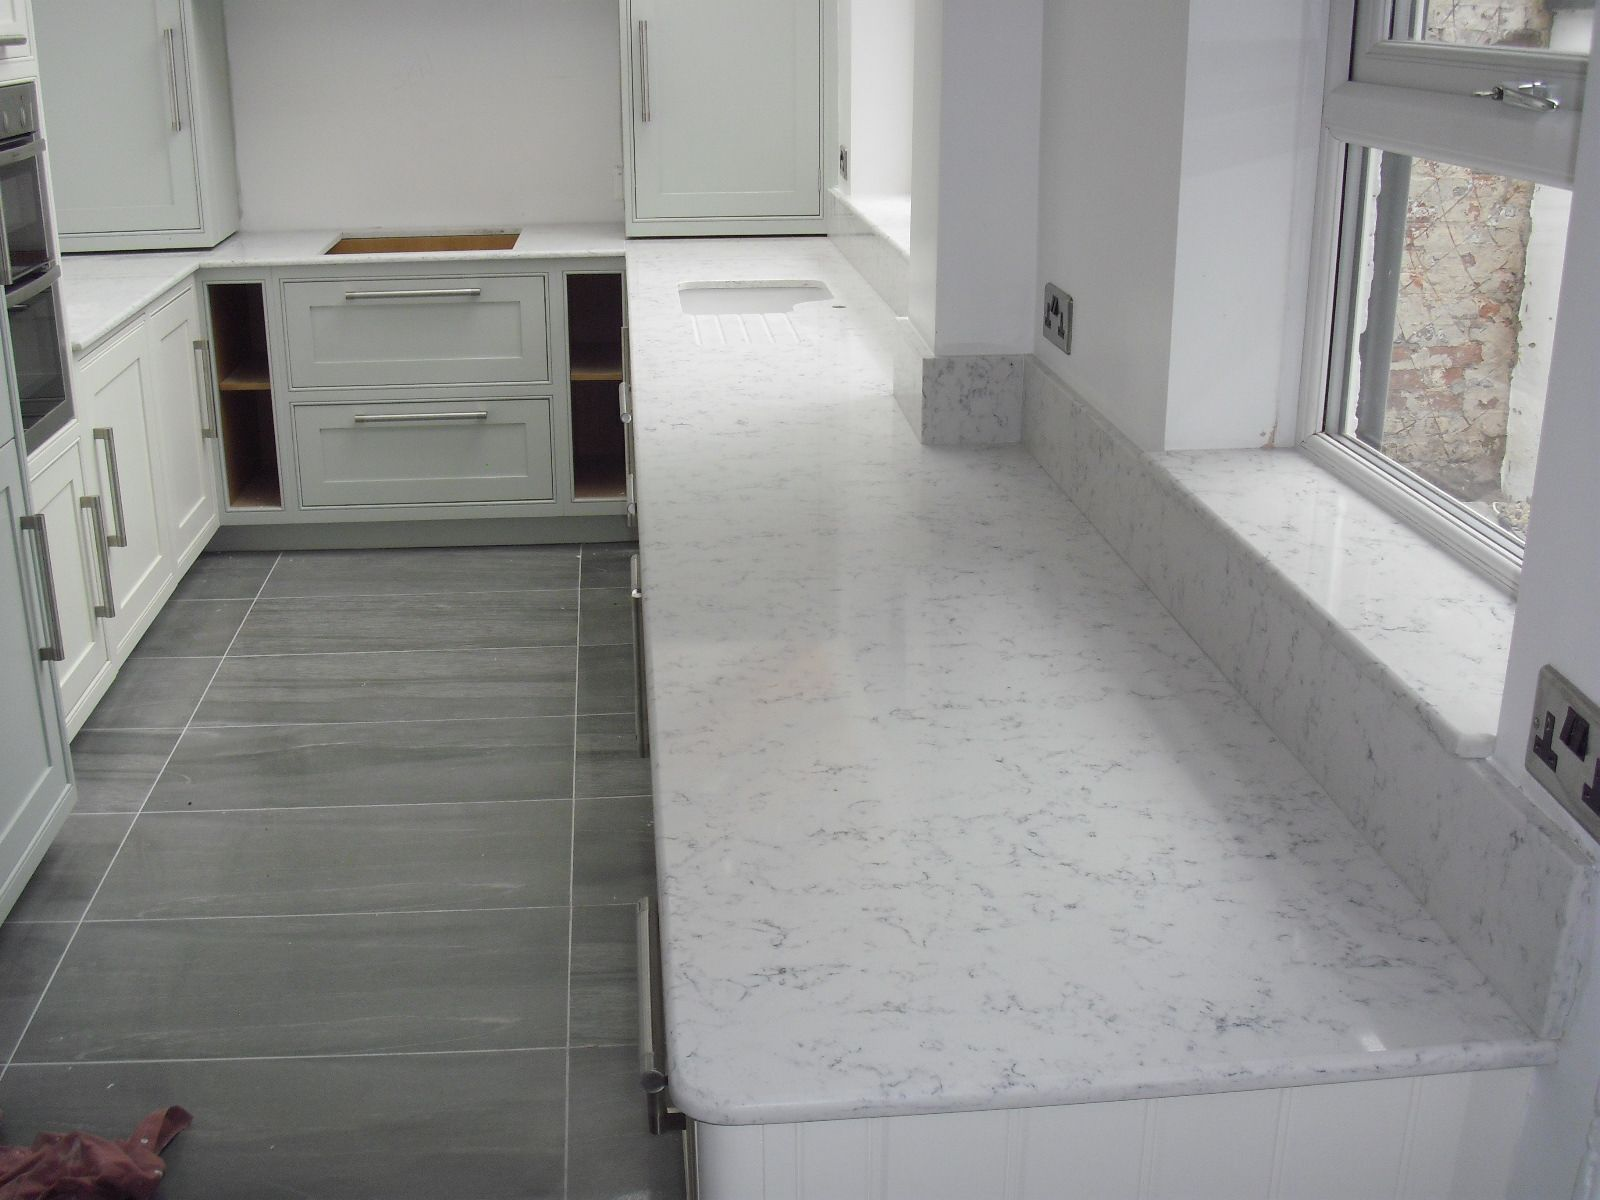 Silestone Quartz Worktops In Lyra 20mm Thick With Demi Bullnose Edge Silestone Countertops Kitchen Worktop Kitchen Redecorating